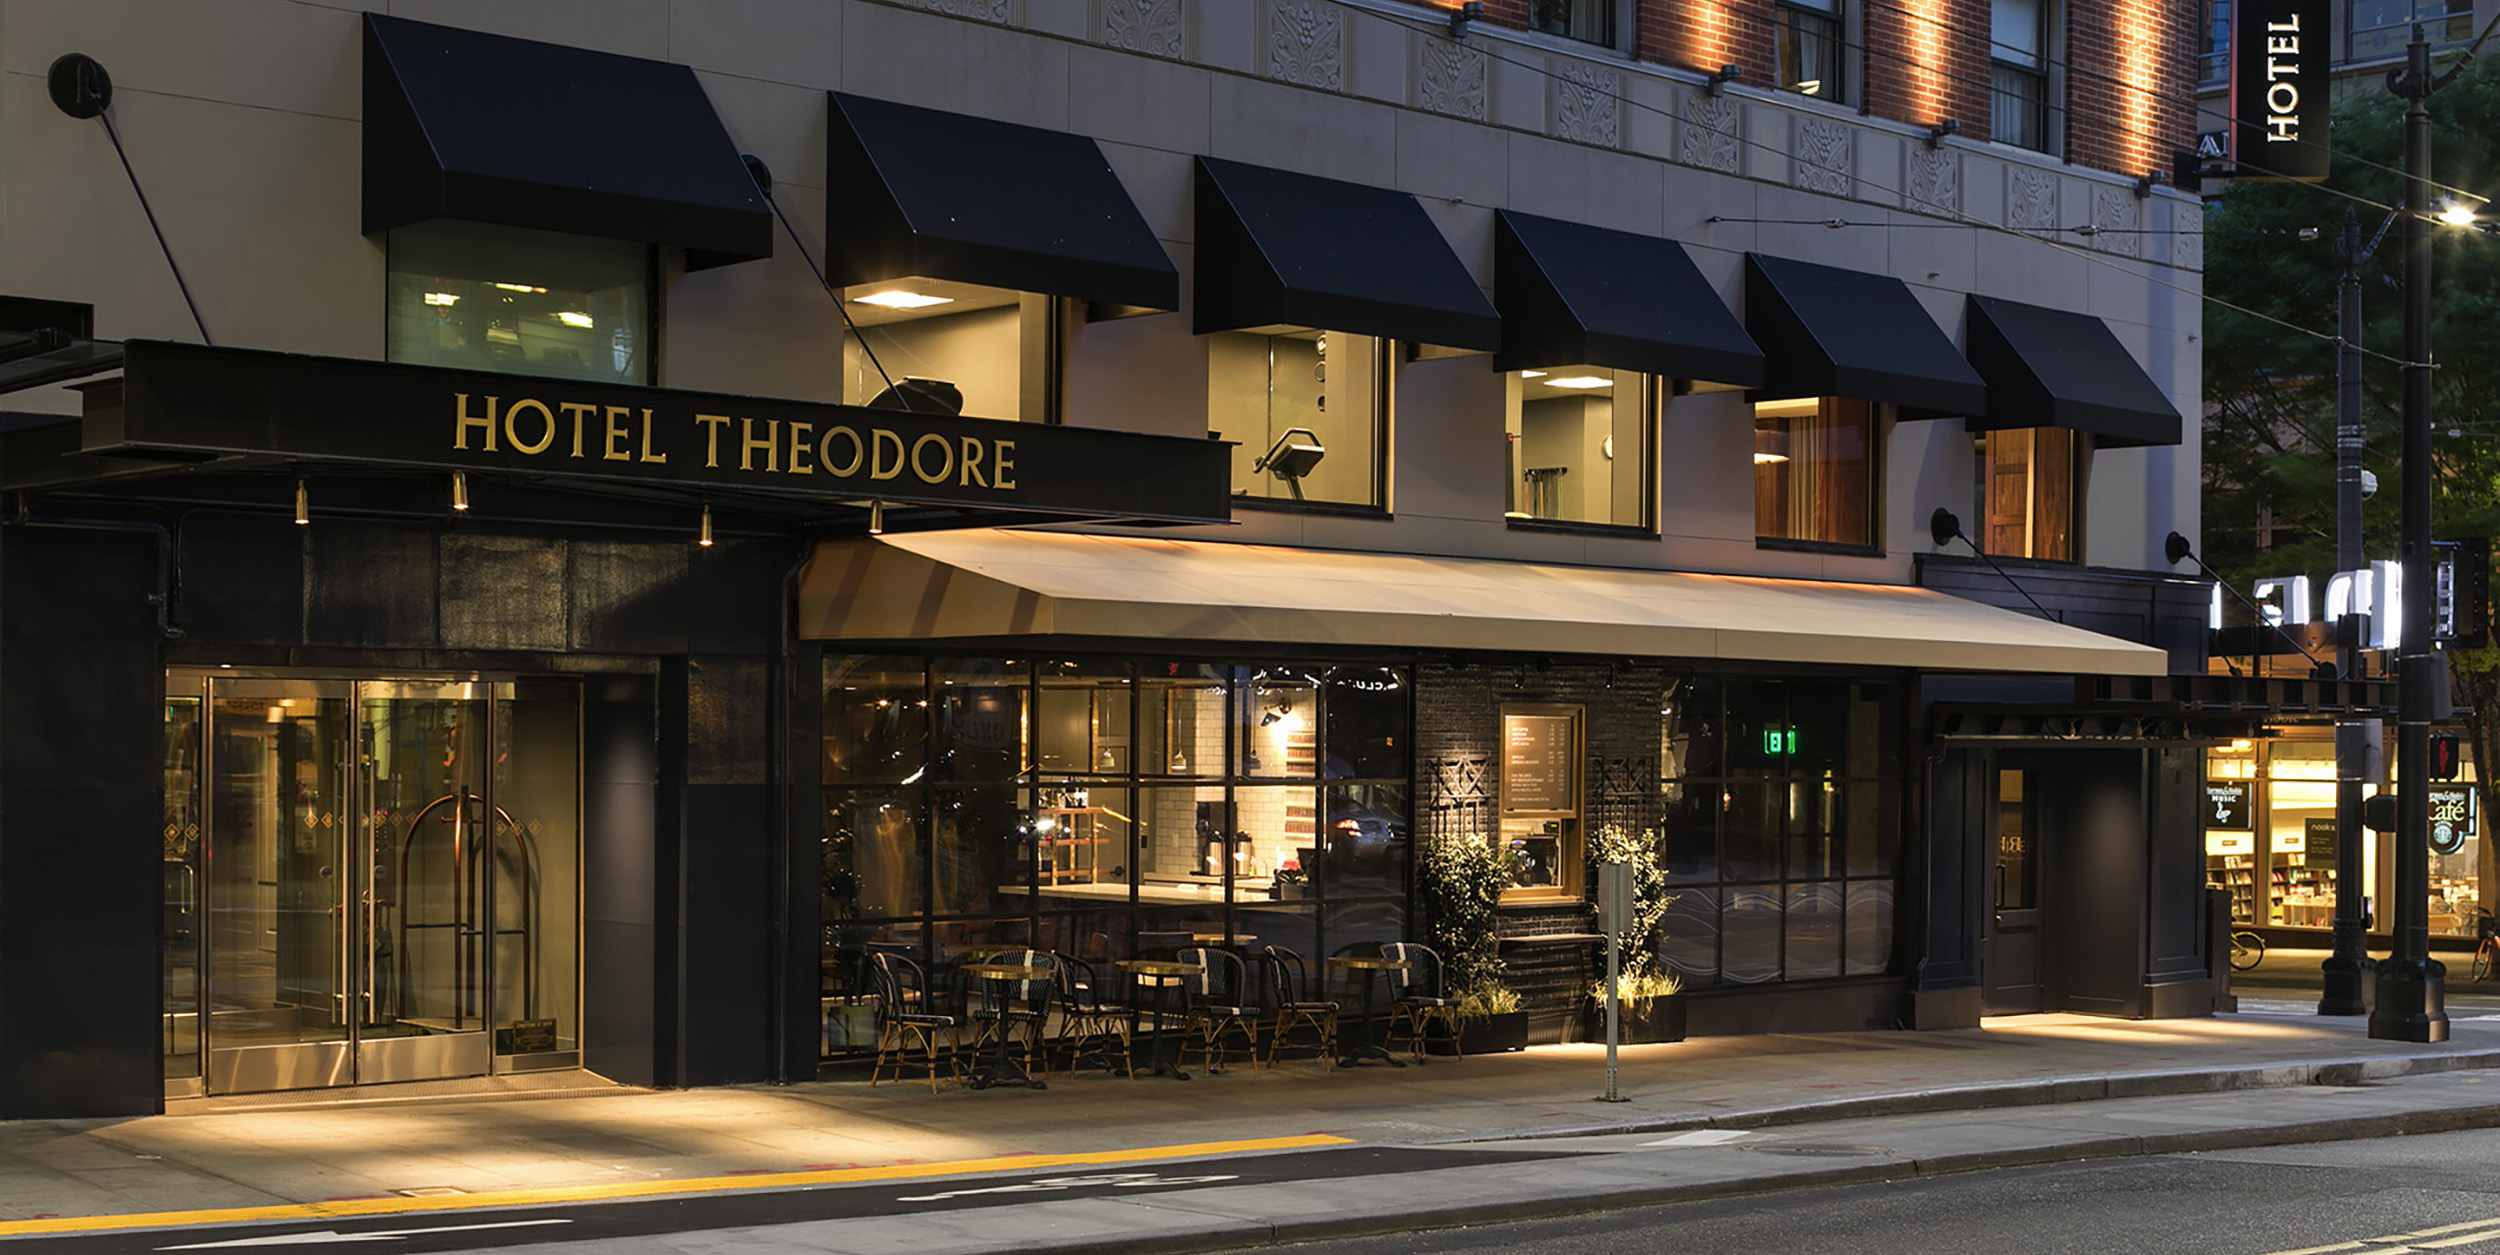 Image result for Hotel Theodore seattle